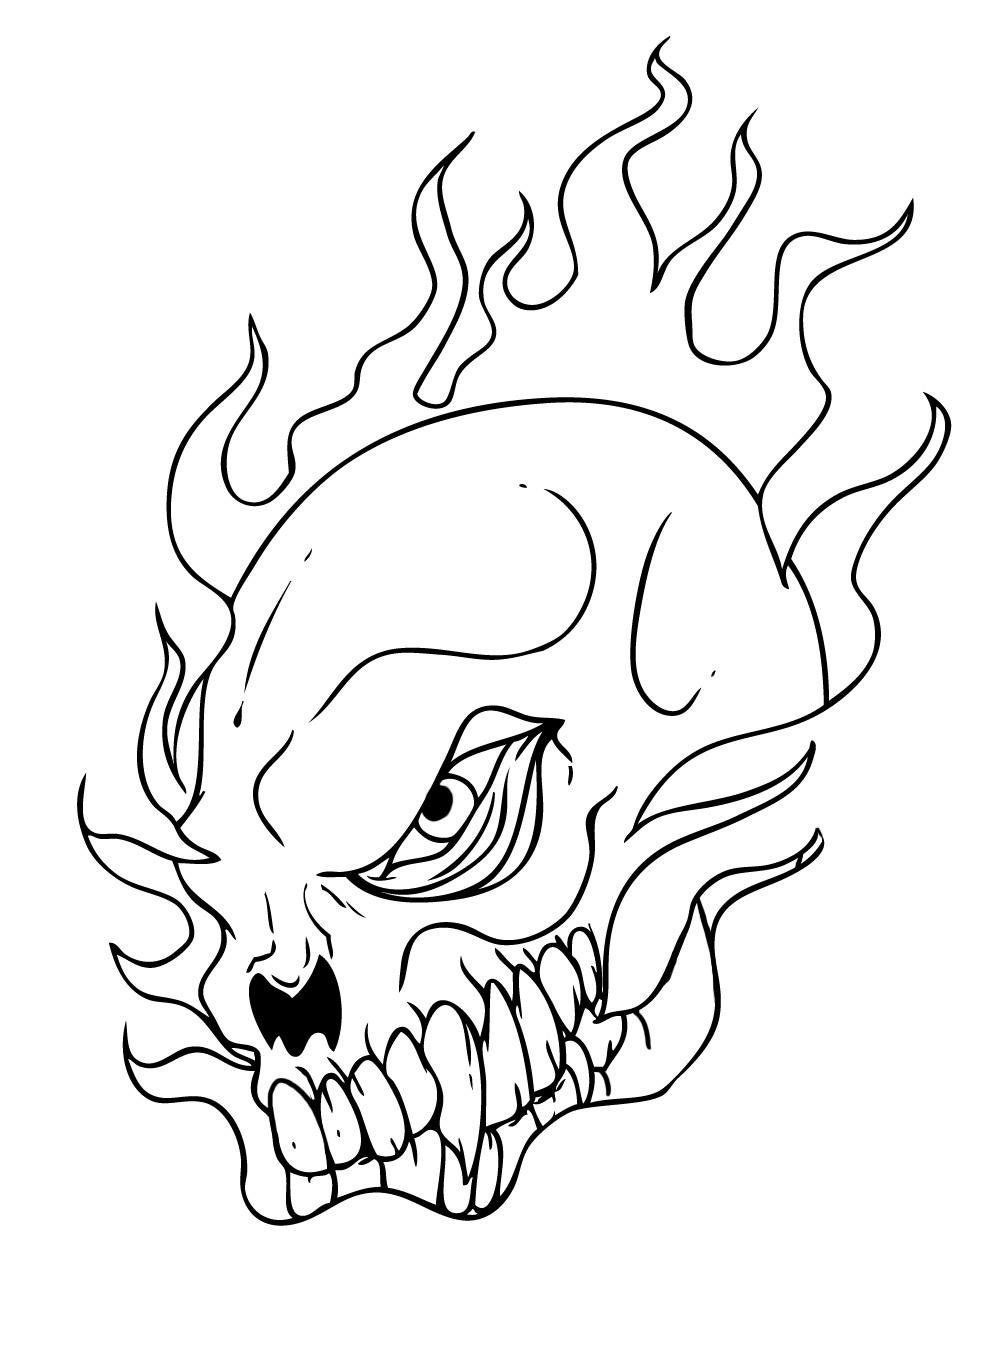 coloring pages of skulls with flames skulls on fire coloring pages at getdrawings free download pages coloring flames with skulls of